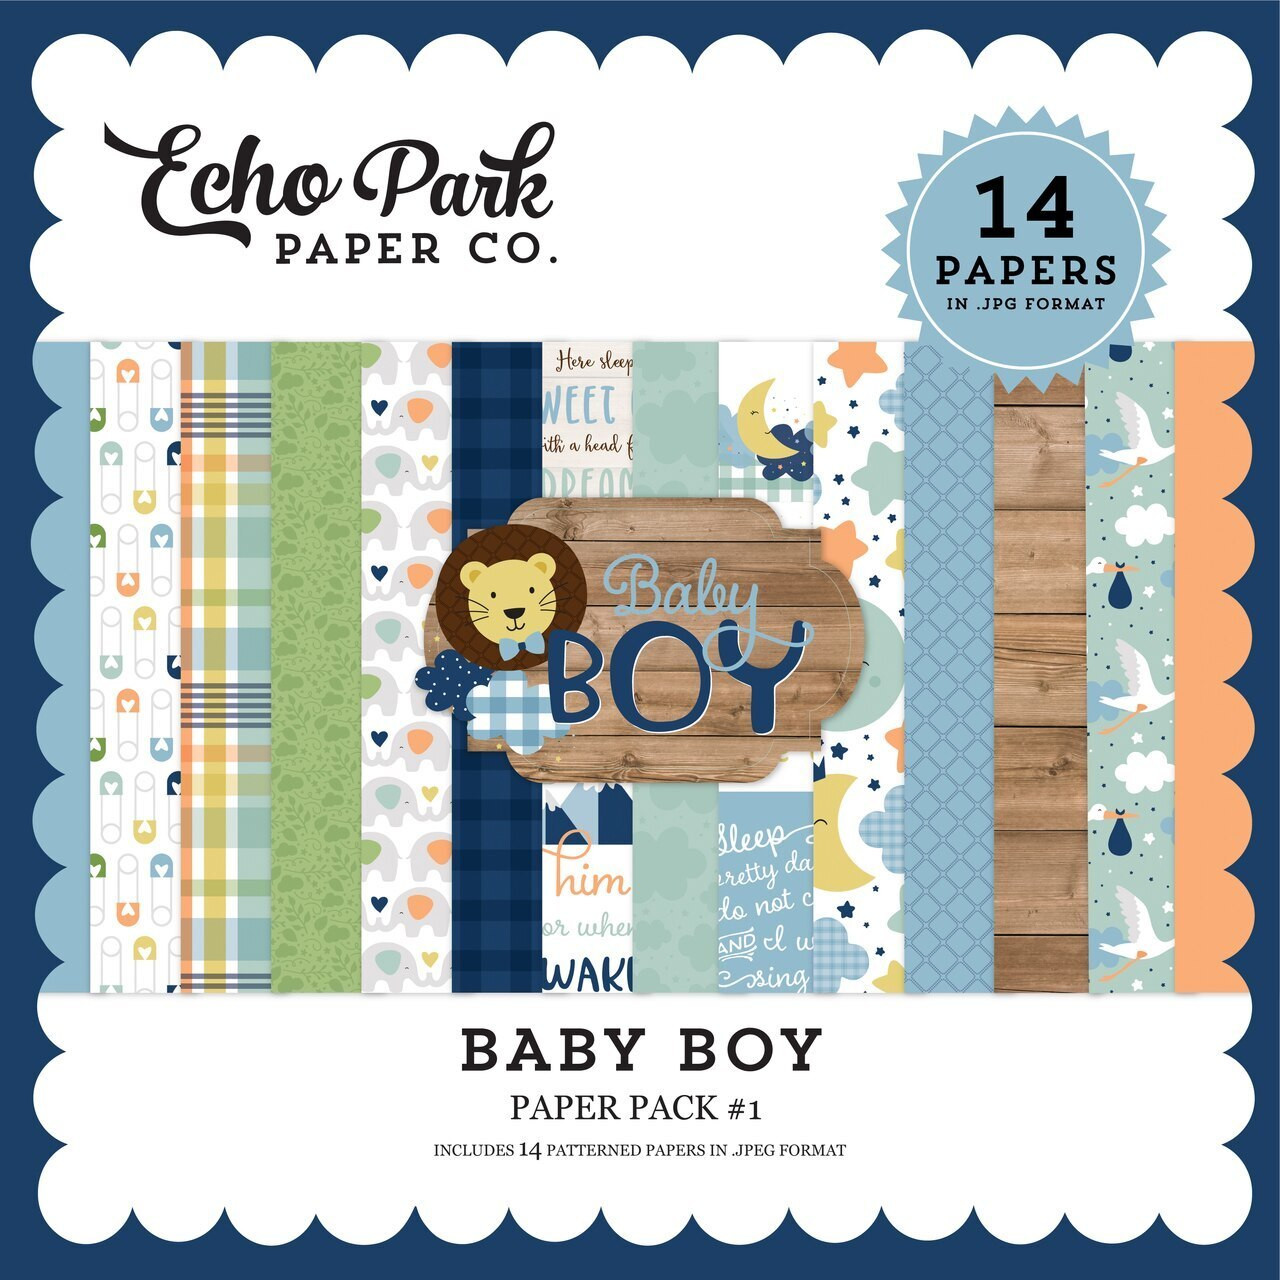 Baby Boy Paper Pack #1